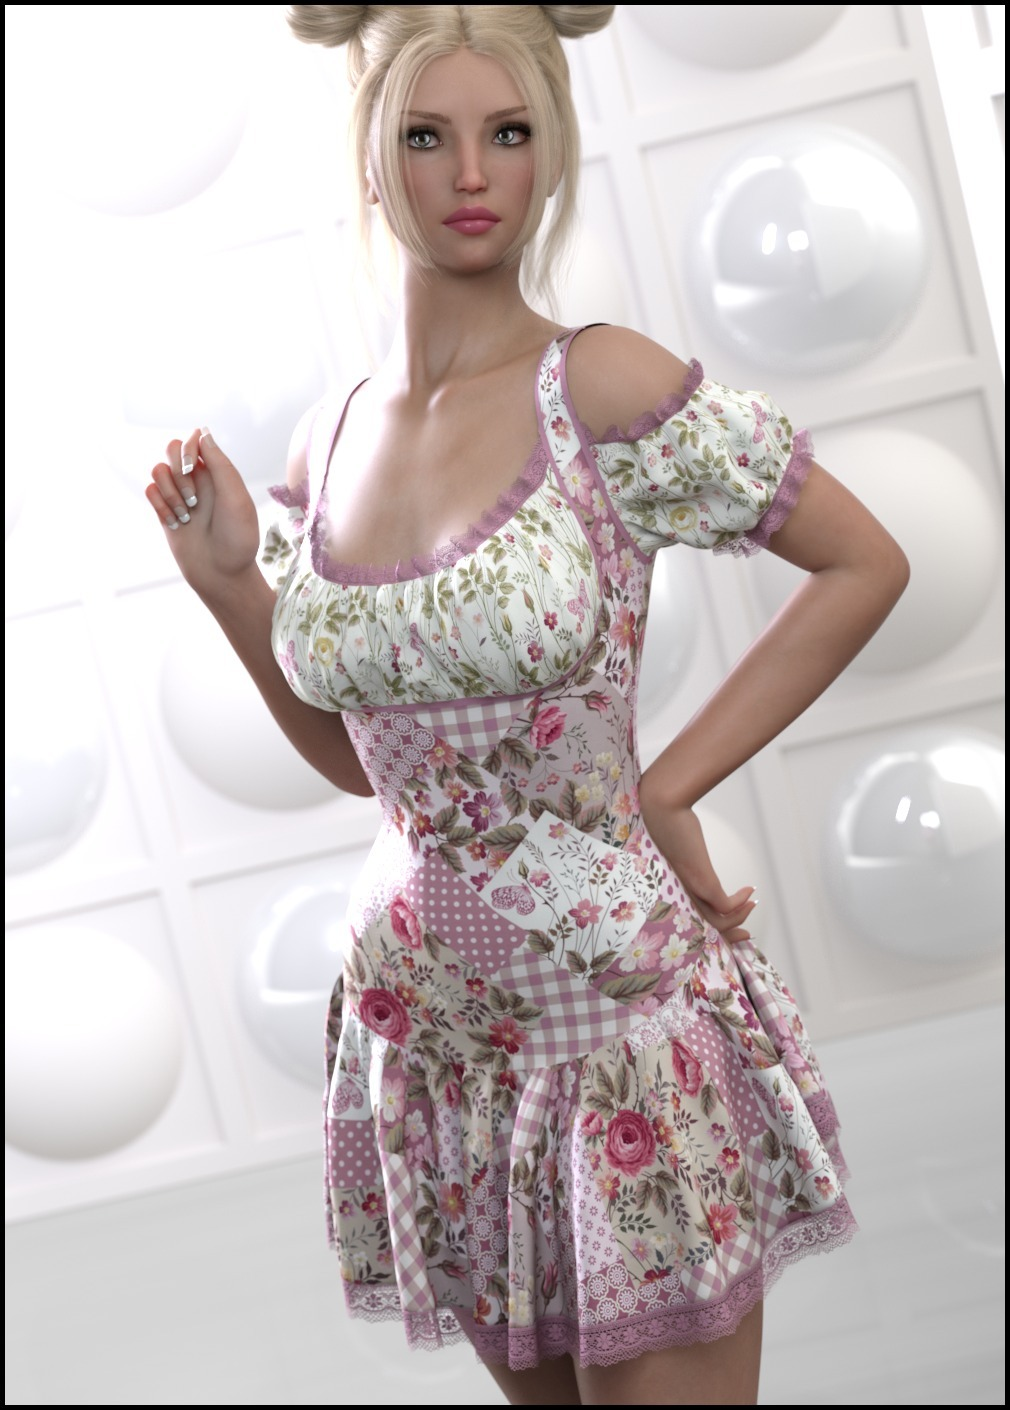 7th Ave: dForce - Rosy Dress for G8F